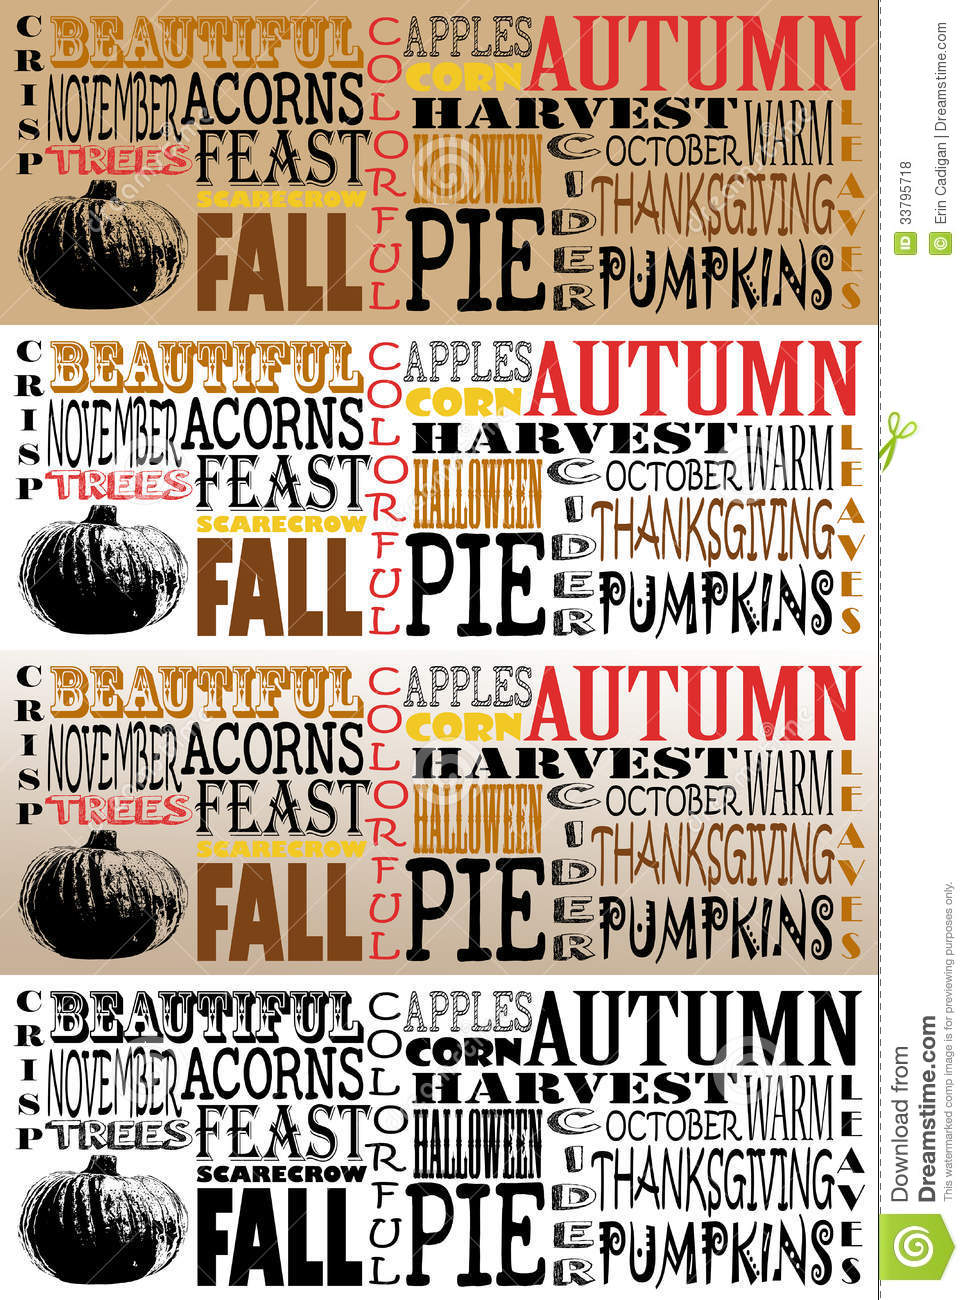 Autumn Word Art Collection Facebook Timelines Se Royalty Free Stock Photos Image 33795718